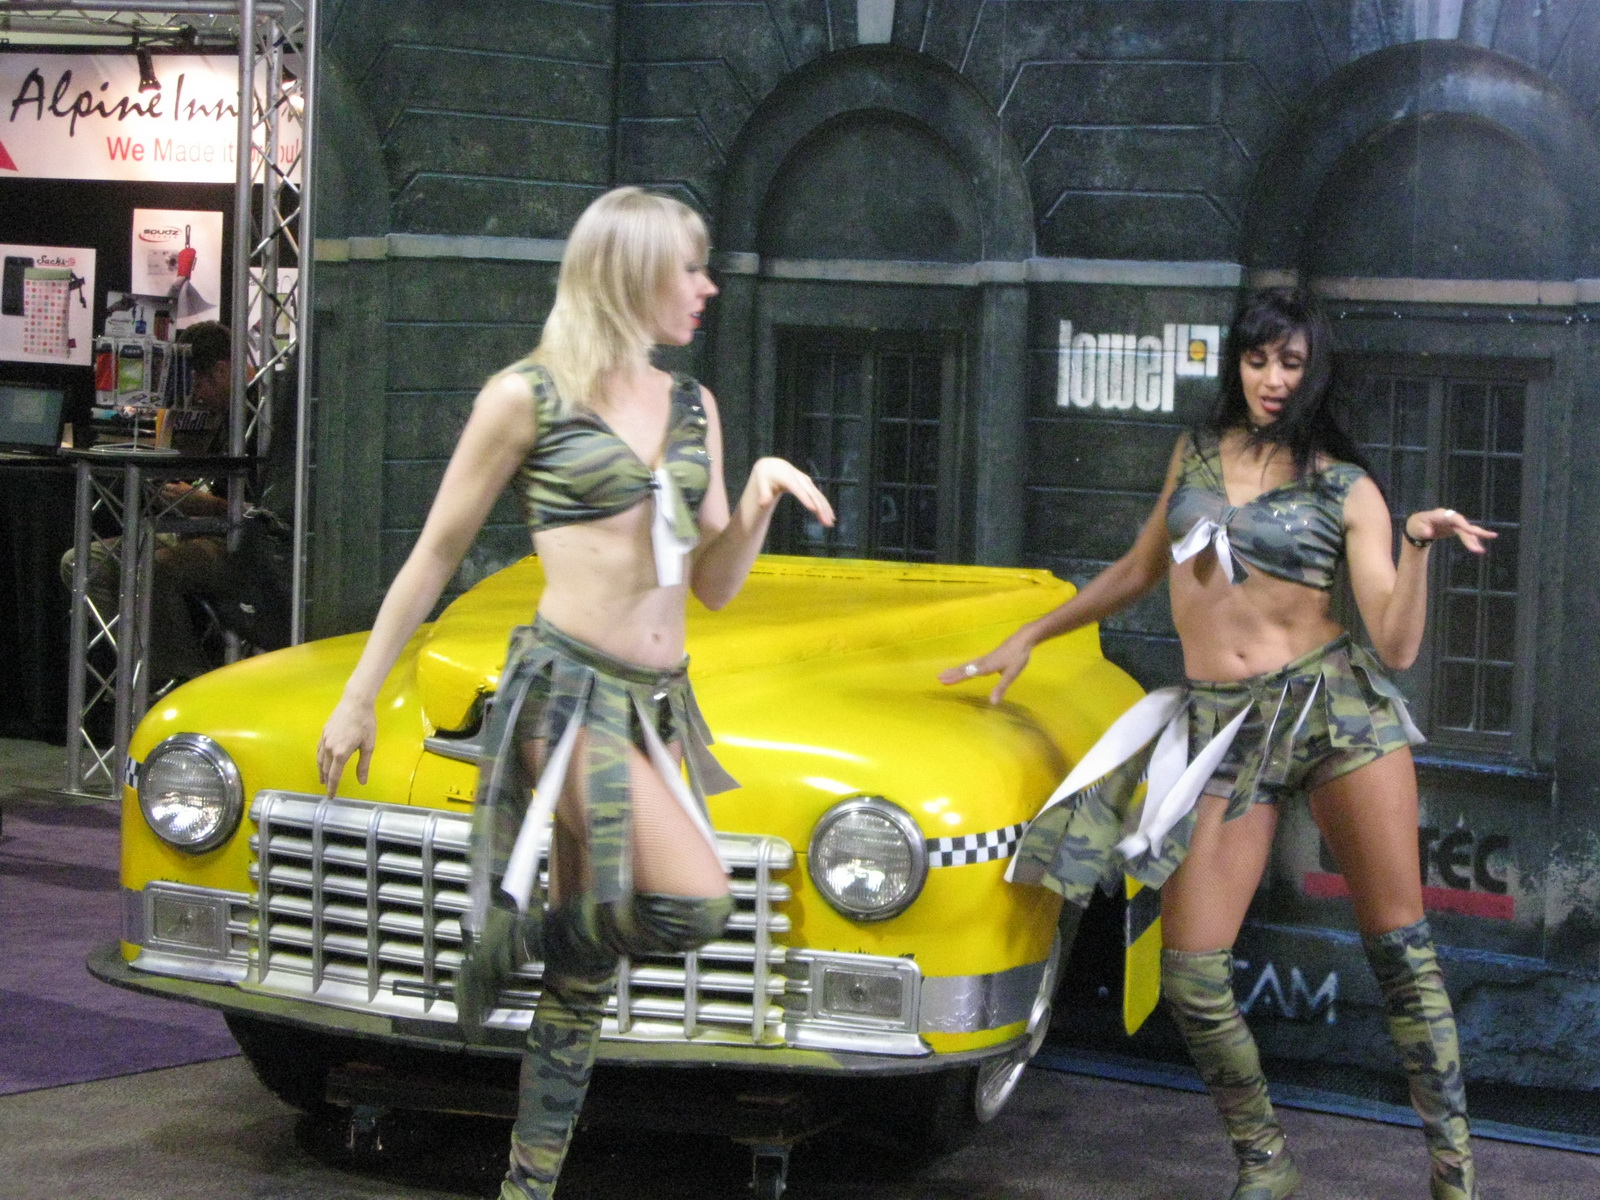 Taxi Cab Booth Babe Dancers